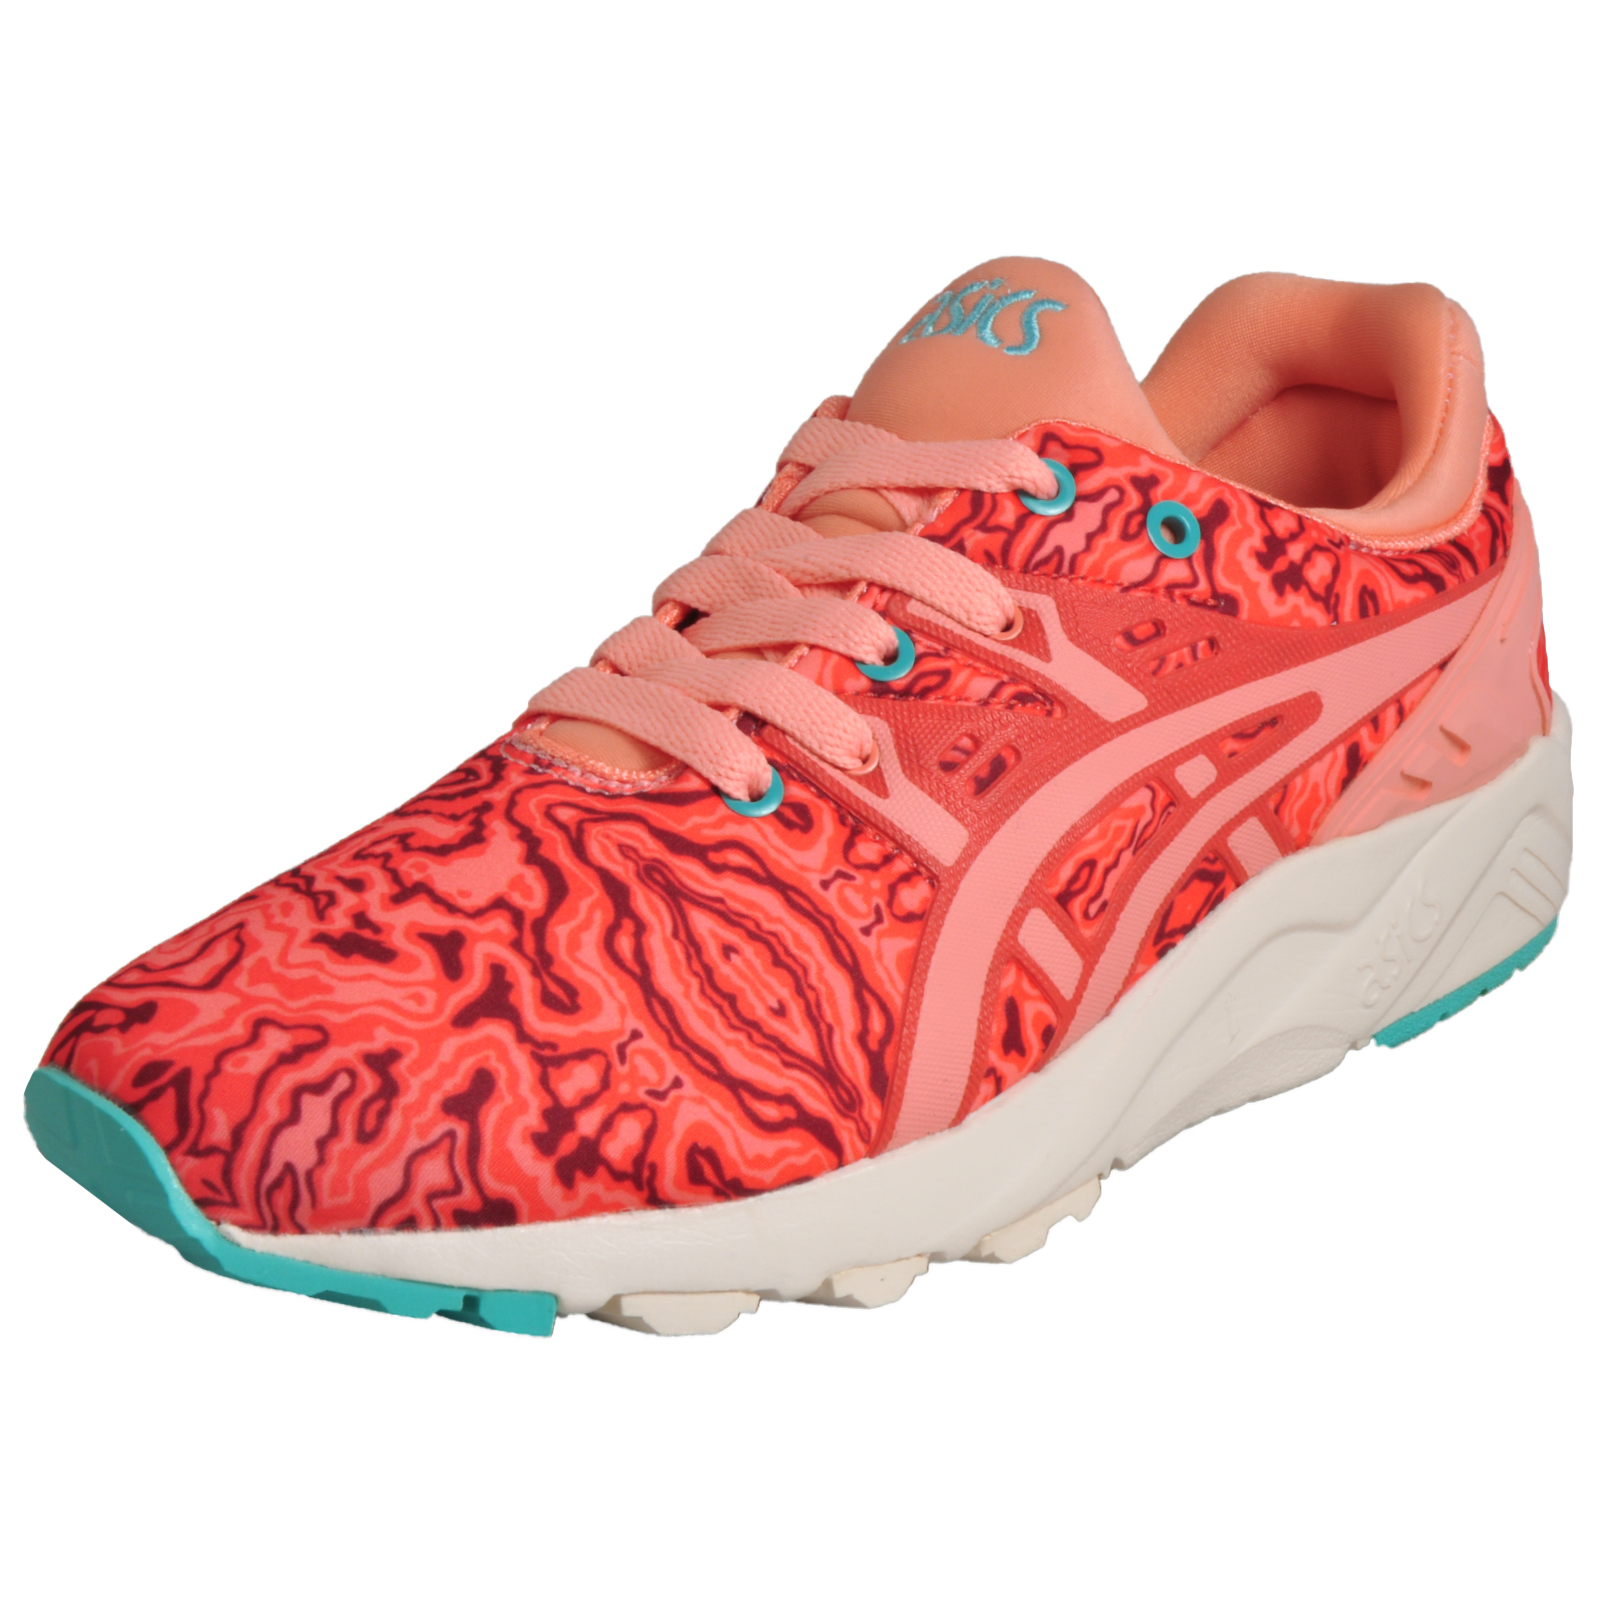 aa4165db660a Details about Asics Tiger Womens Gel Kayano Evo Retro Running Casual  Trainers Coral Pink